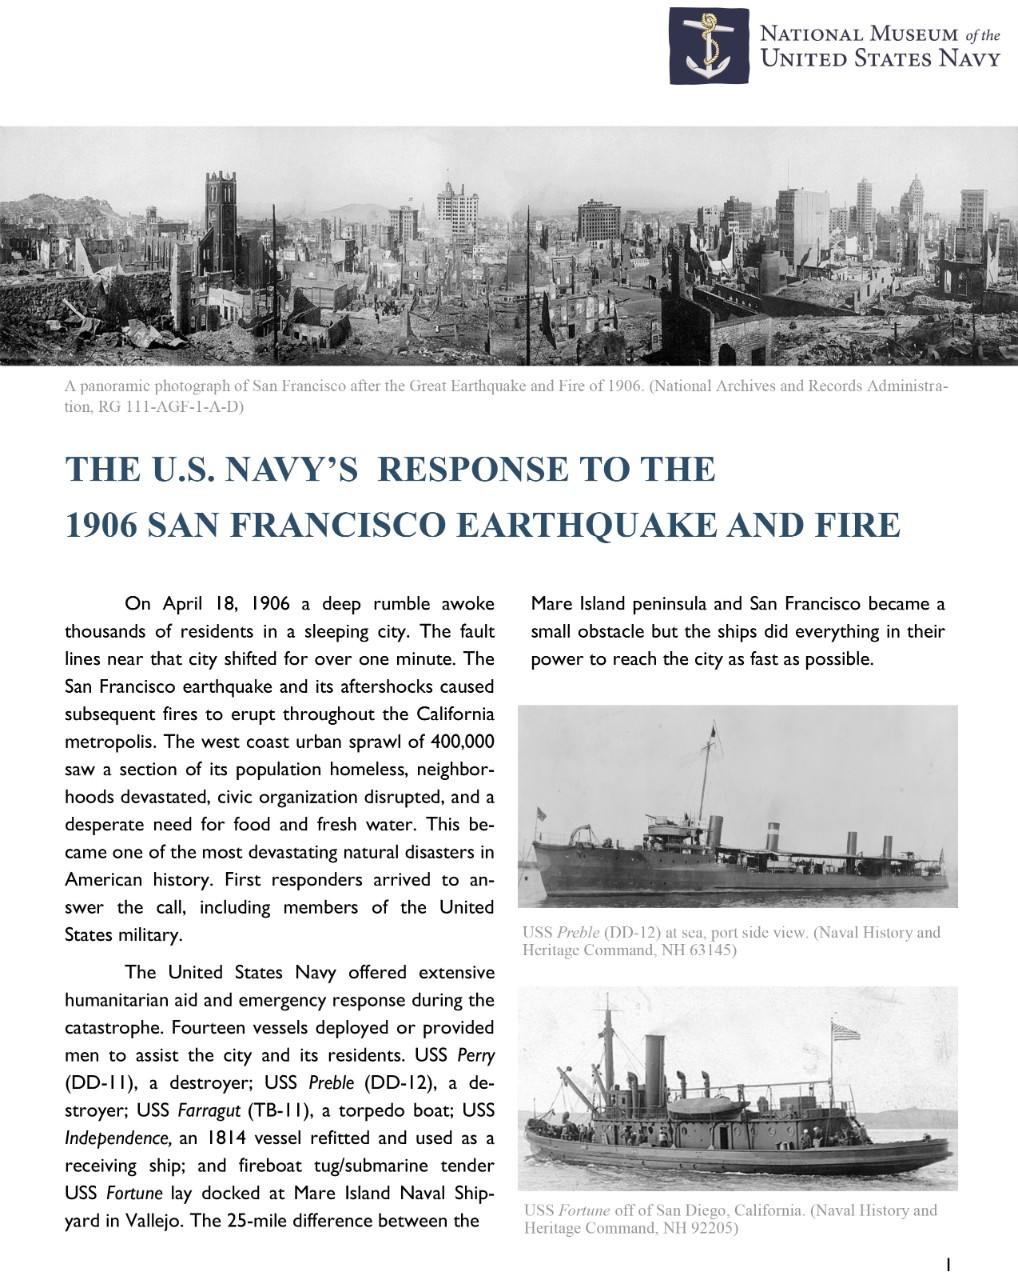 <p>NMUSN_United States Navy_Response to the 1906 San Francisco Earthquake</p>